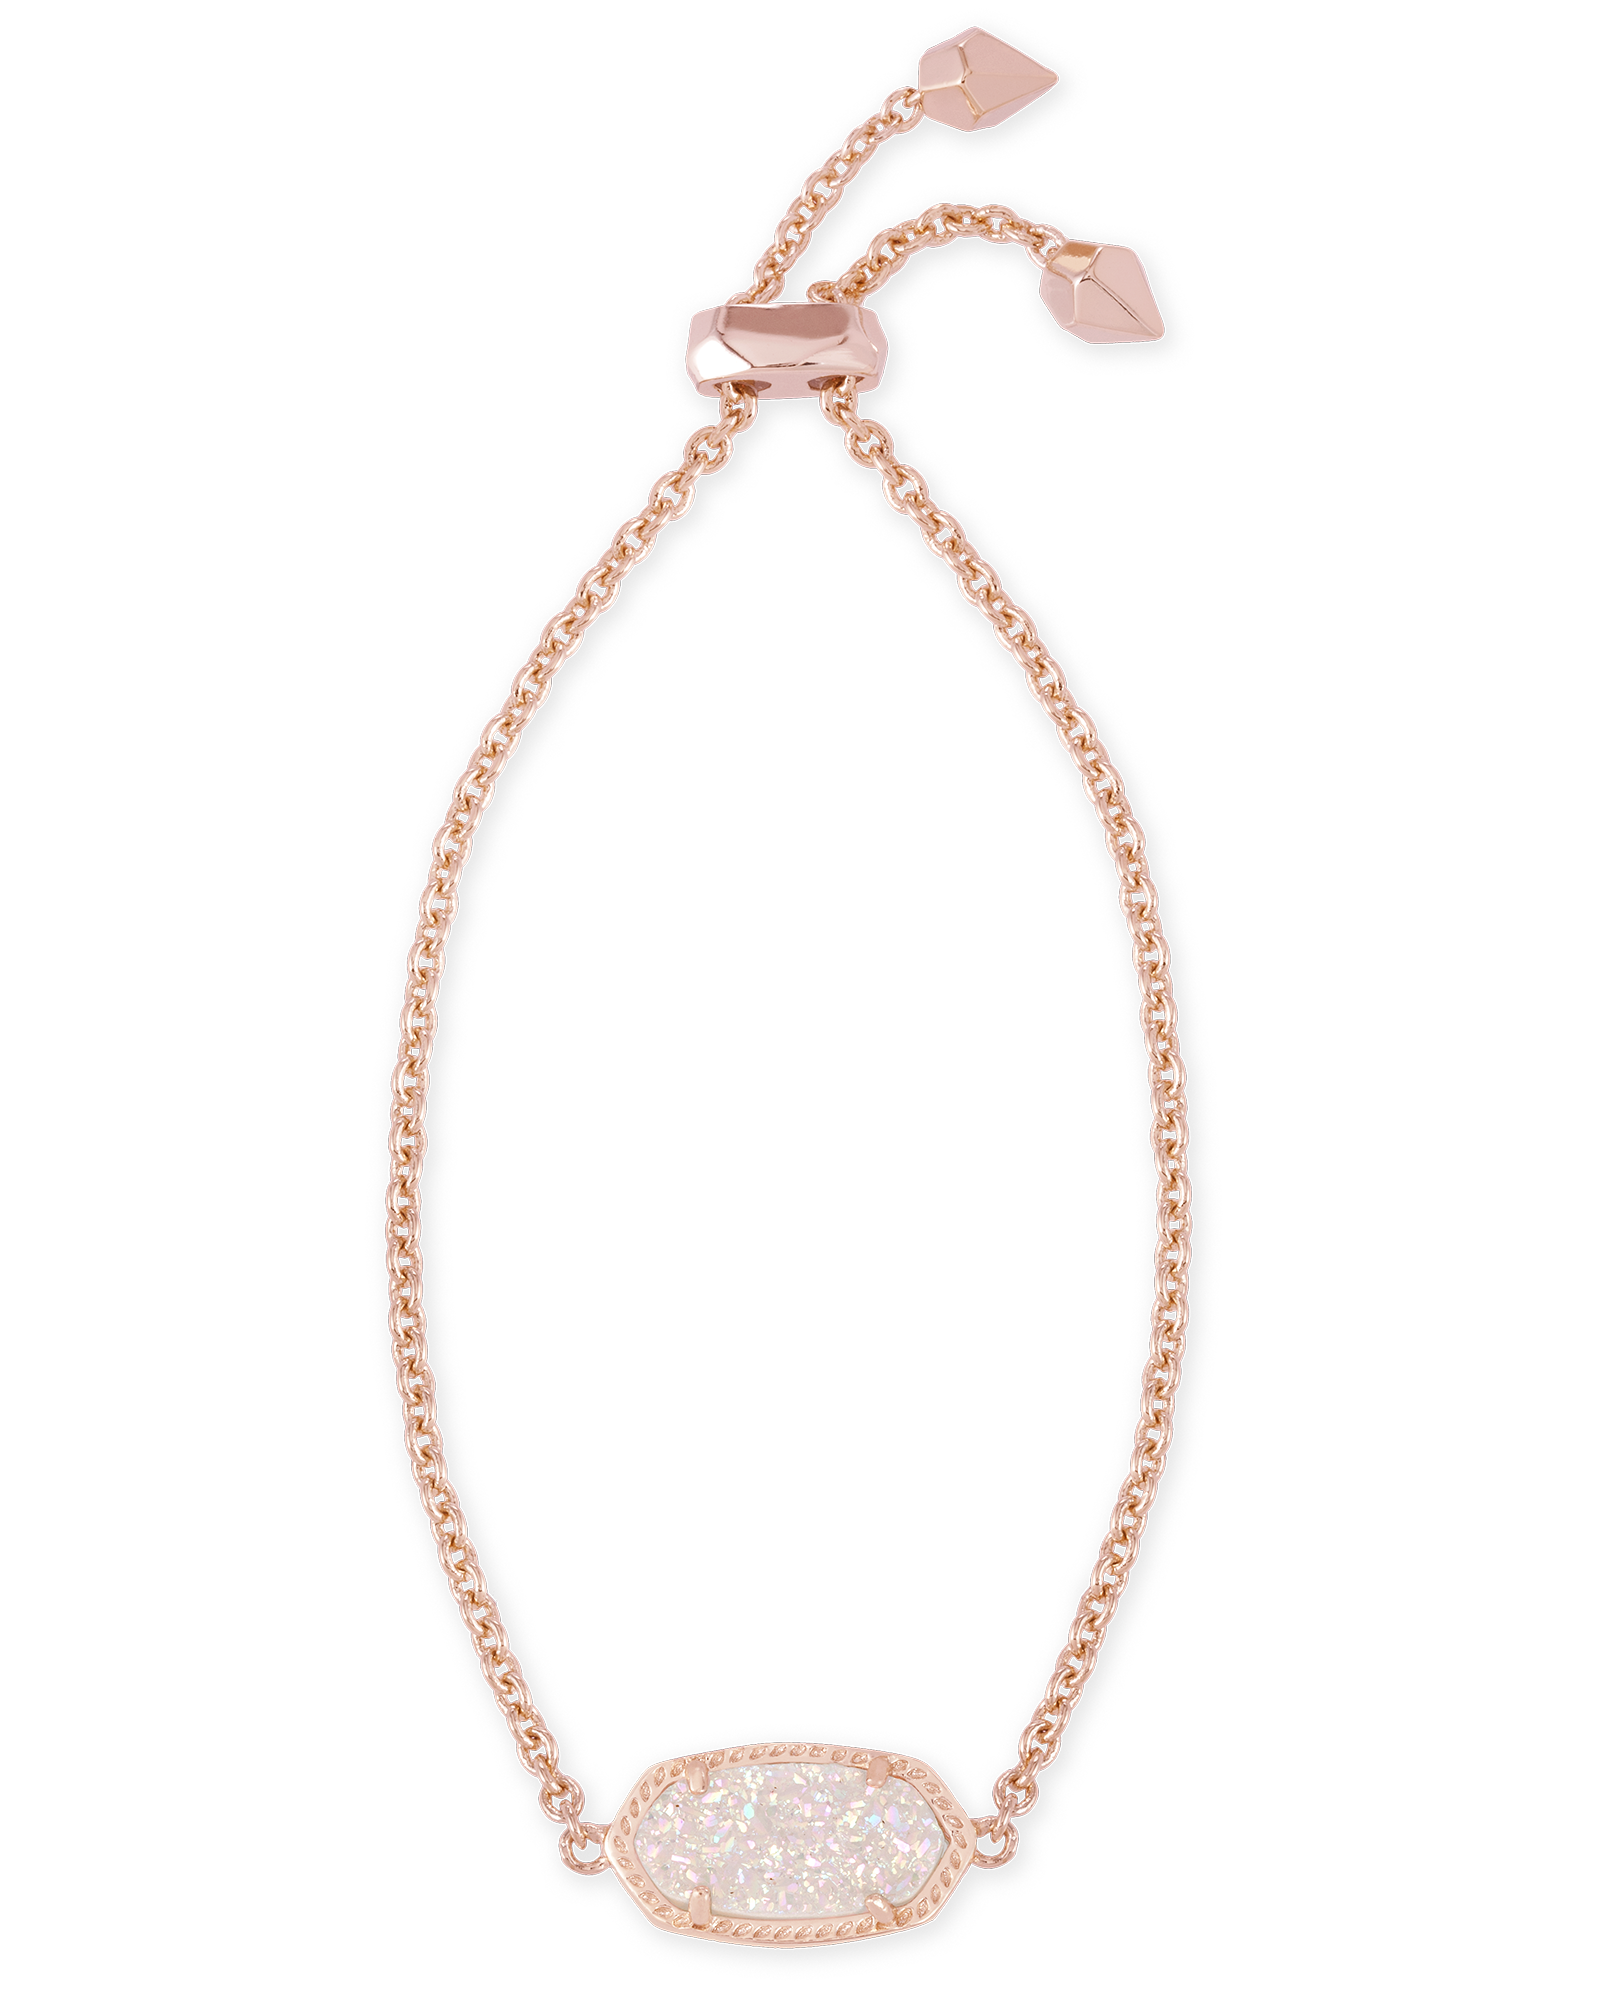 085c9fc4f Elaina Rose Gold Adjustable Bracelet in Iridescent Drusy - Kendra Scott  Jewelry.